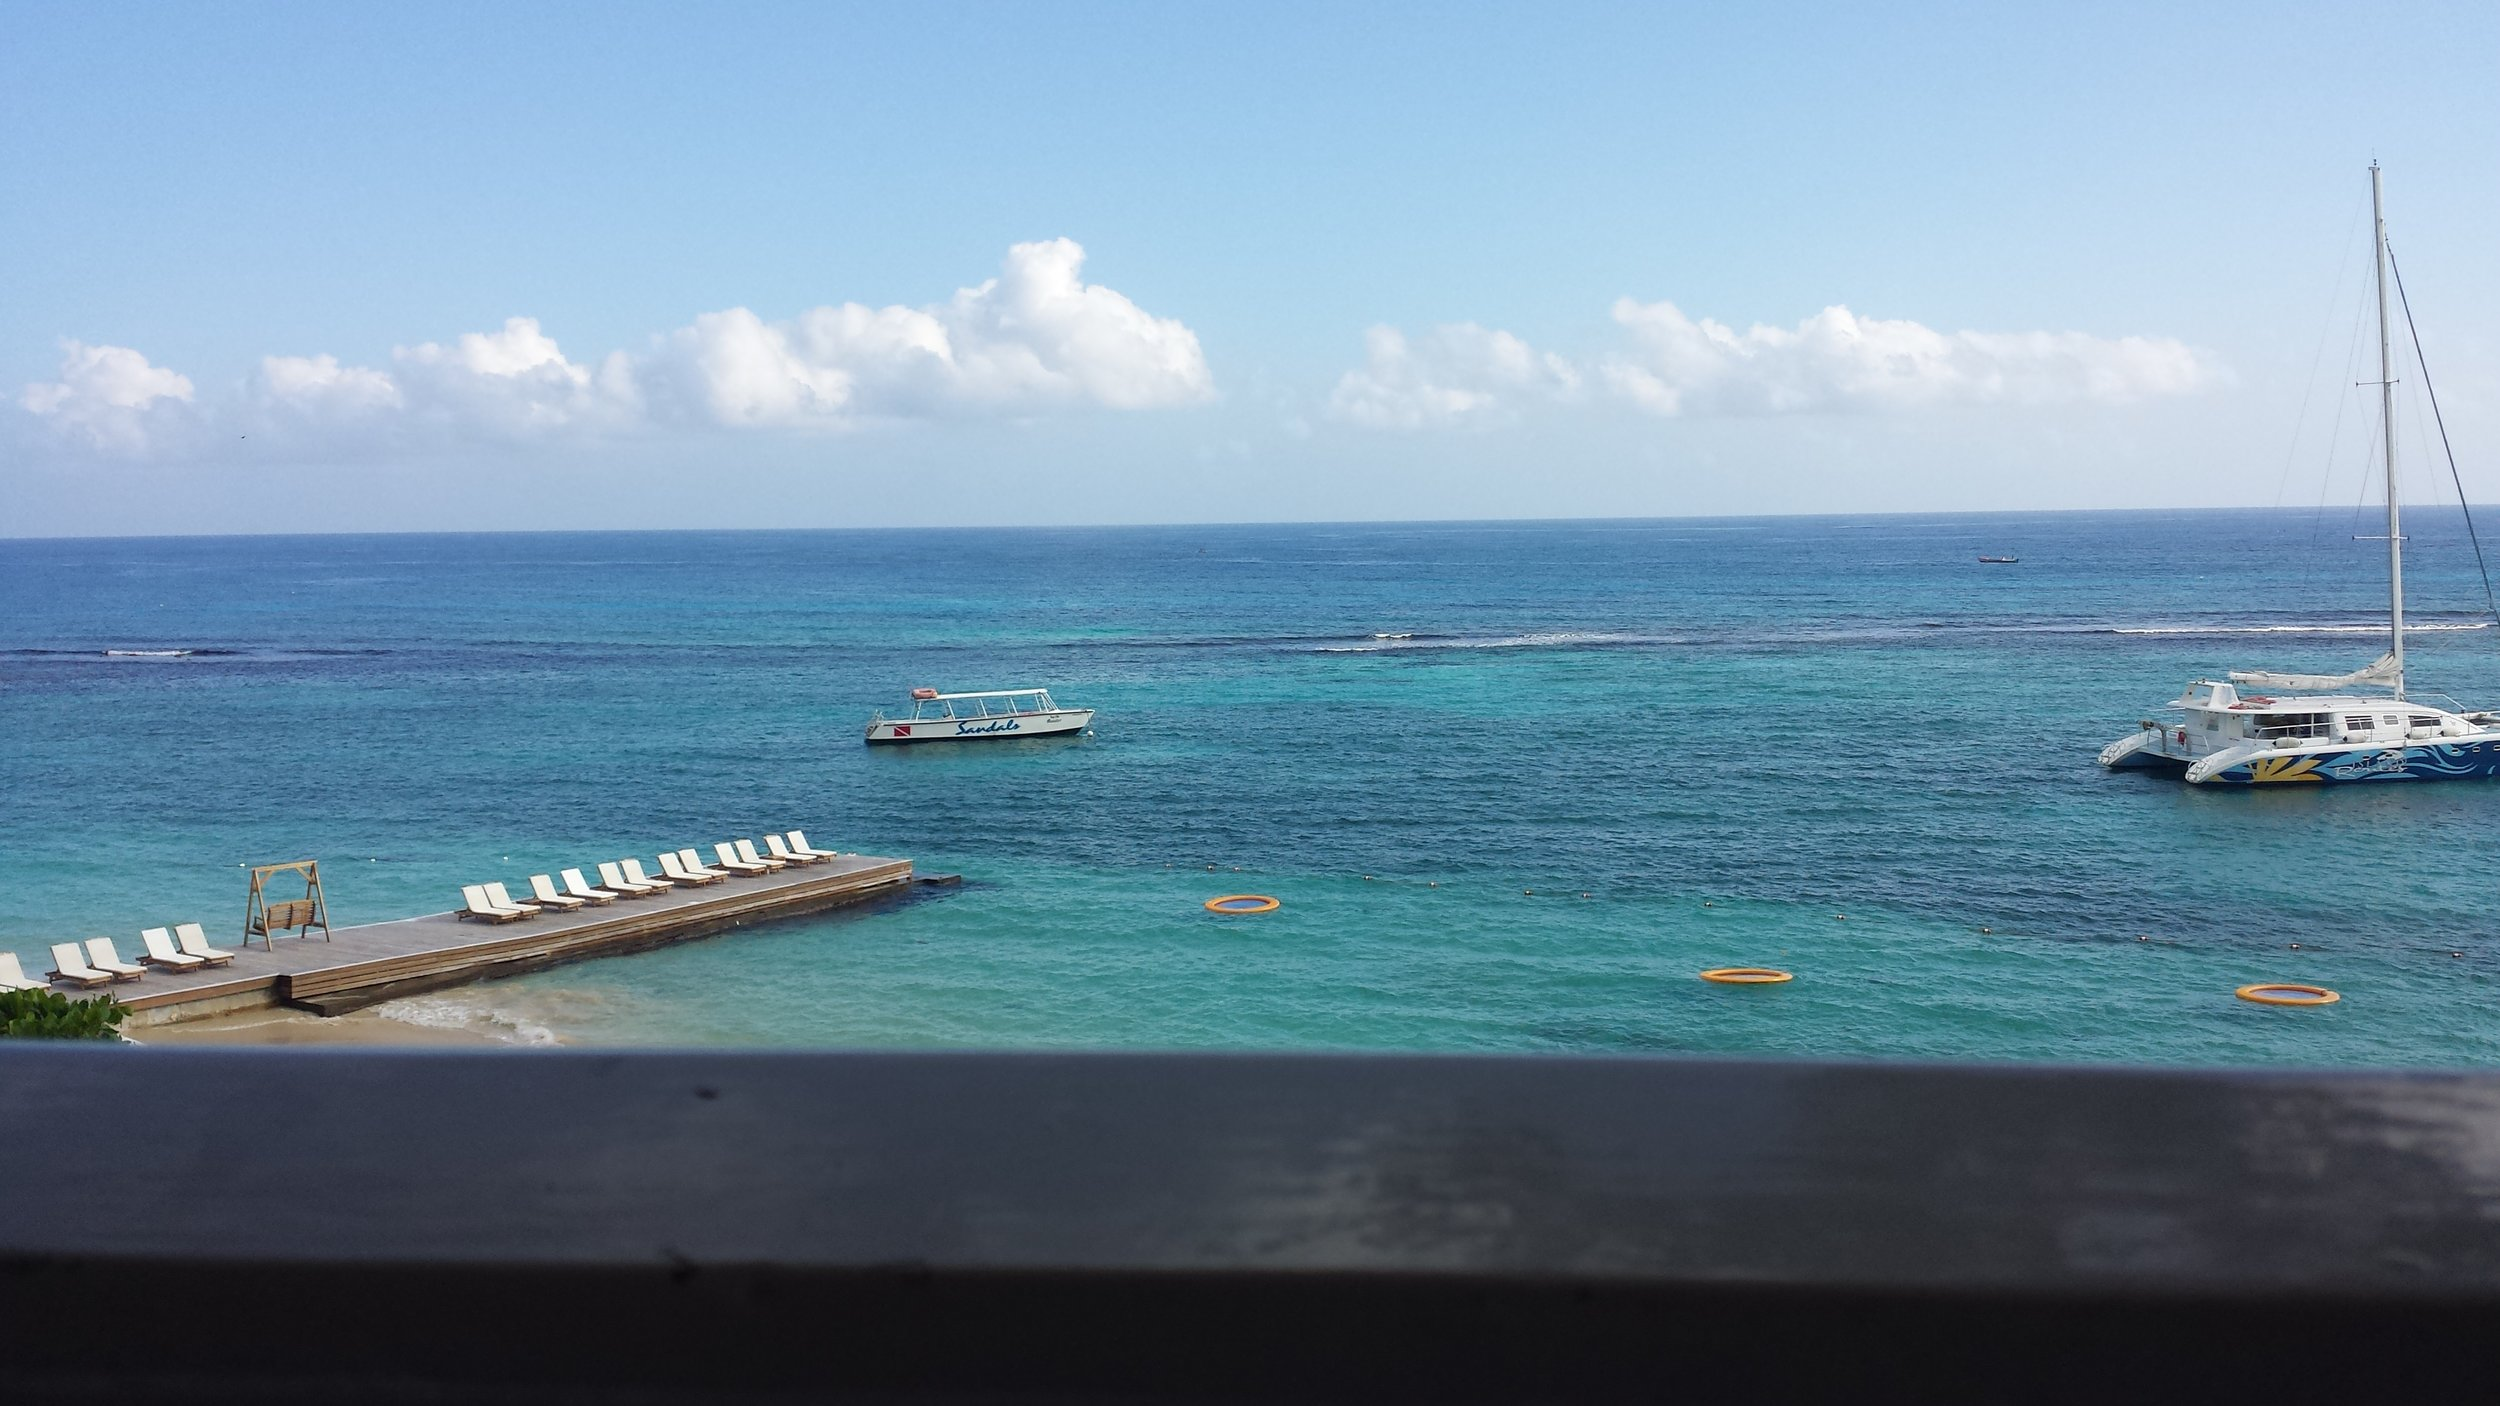 View from the Terrace at Sandals Royal Plantation Resort in Ocho Rios, Jamaica.